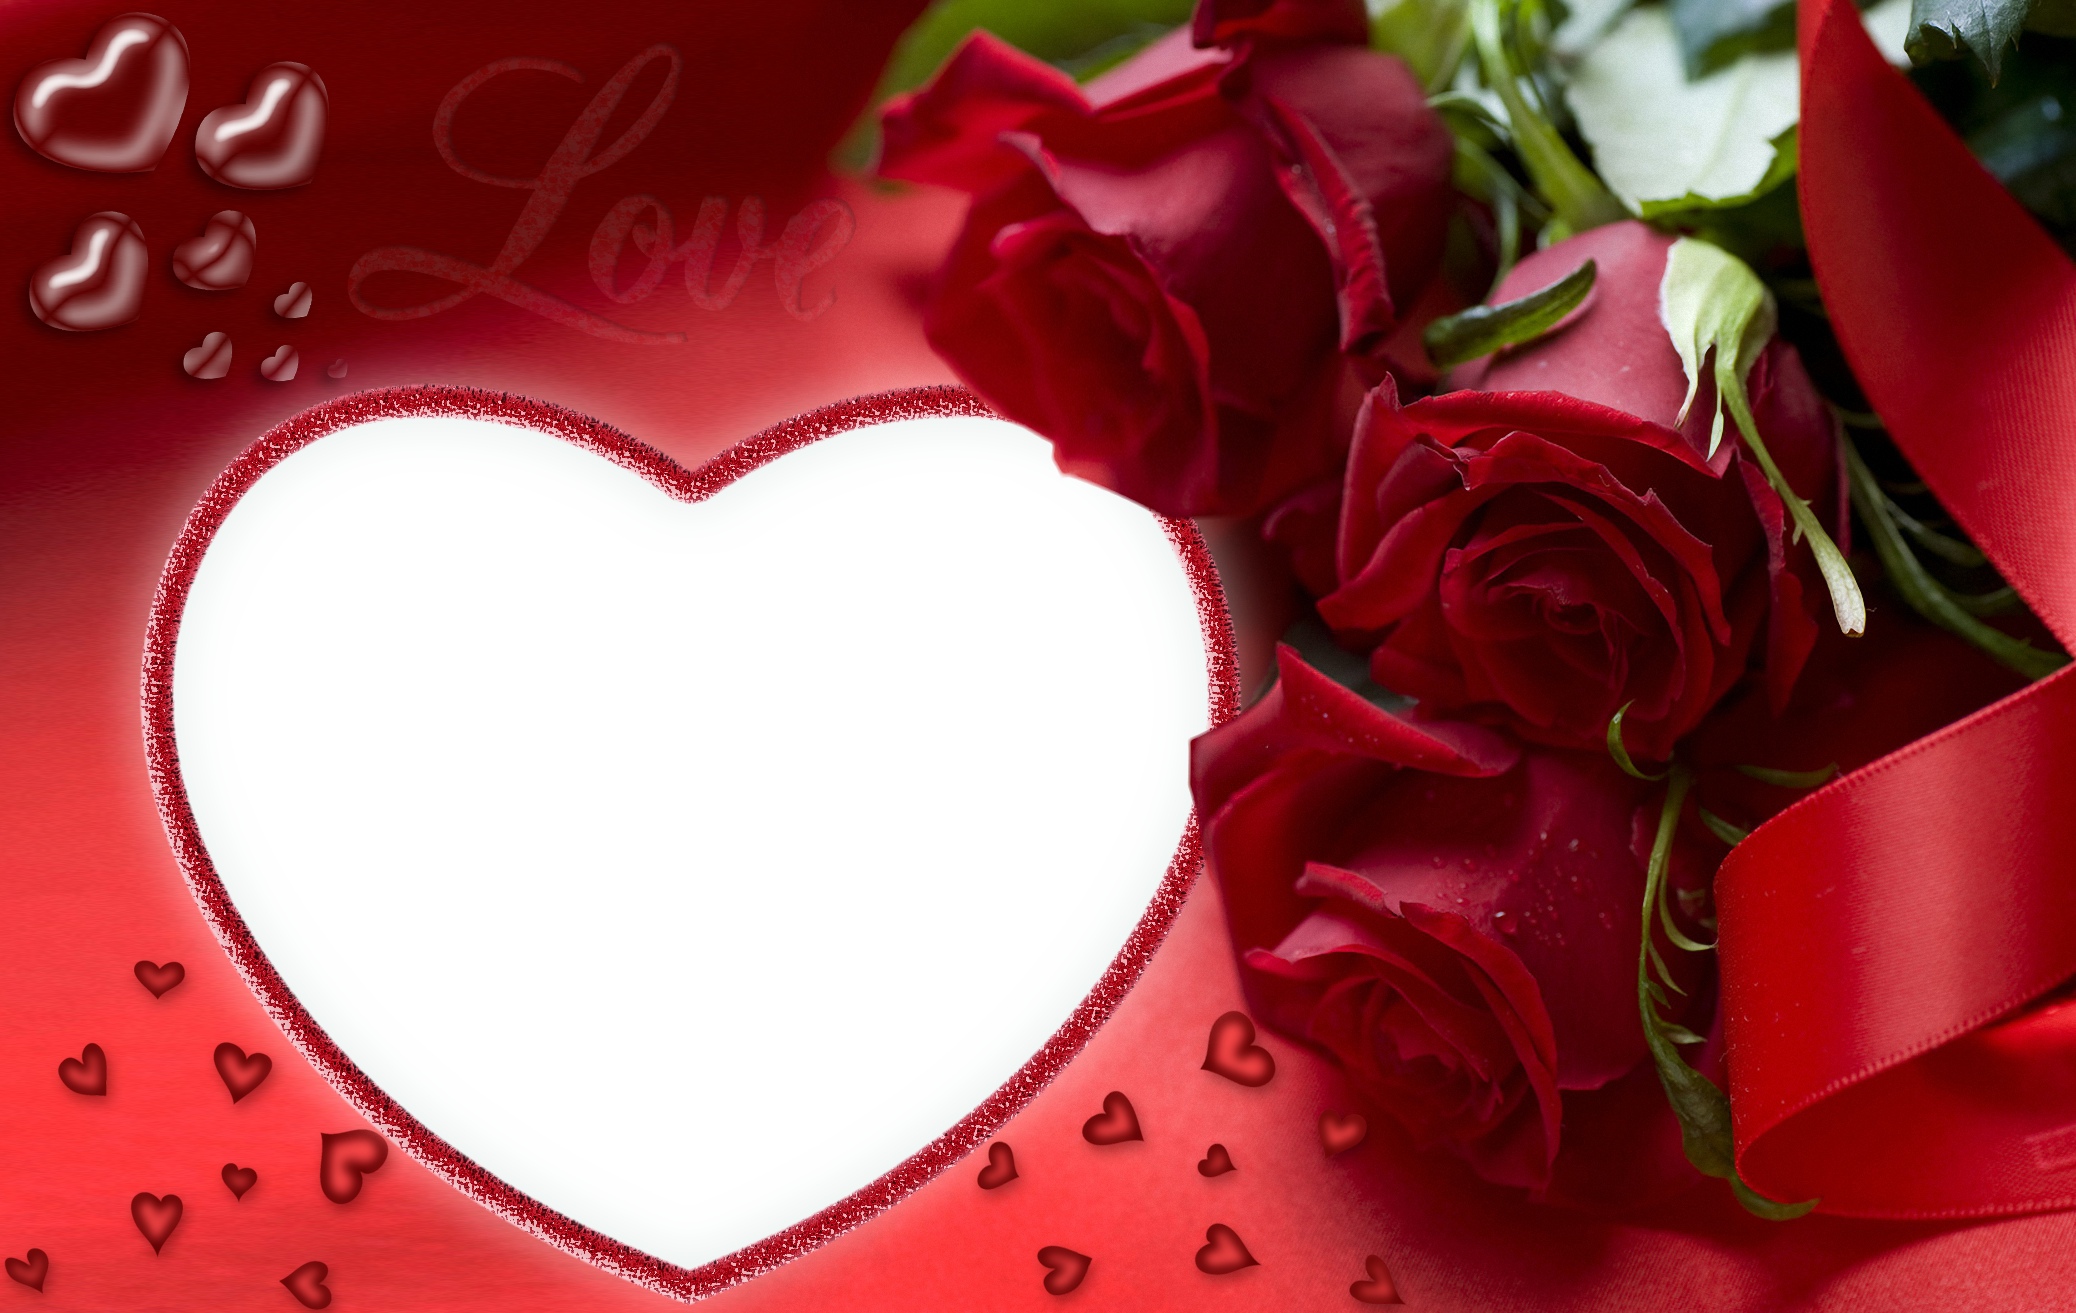 Png love frame. Red roses and heart